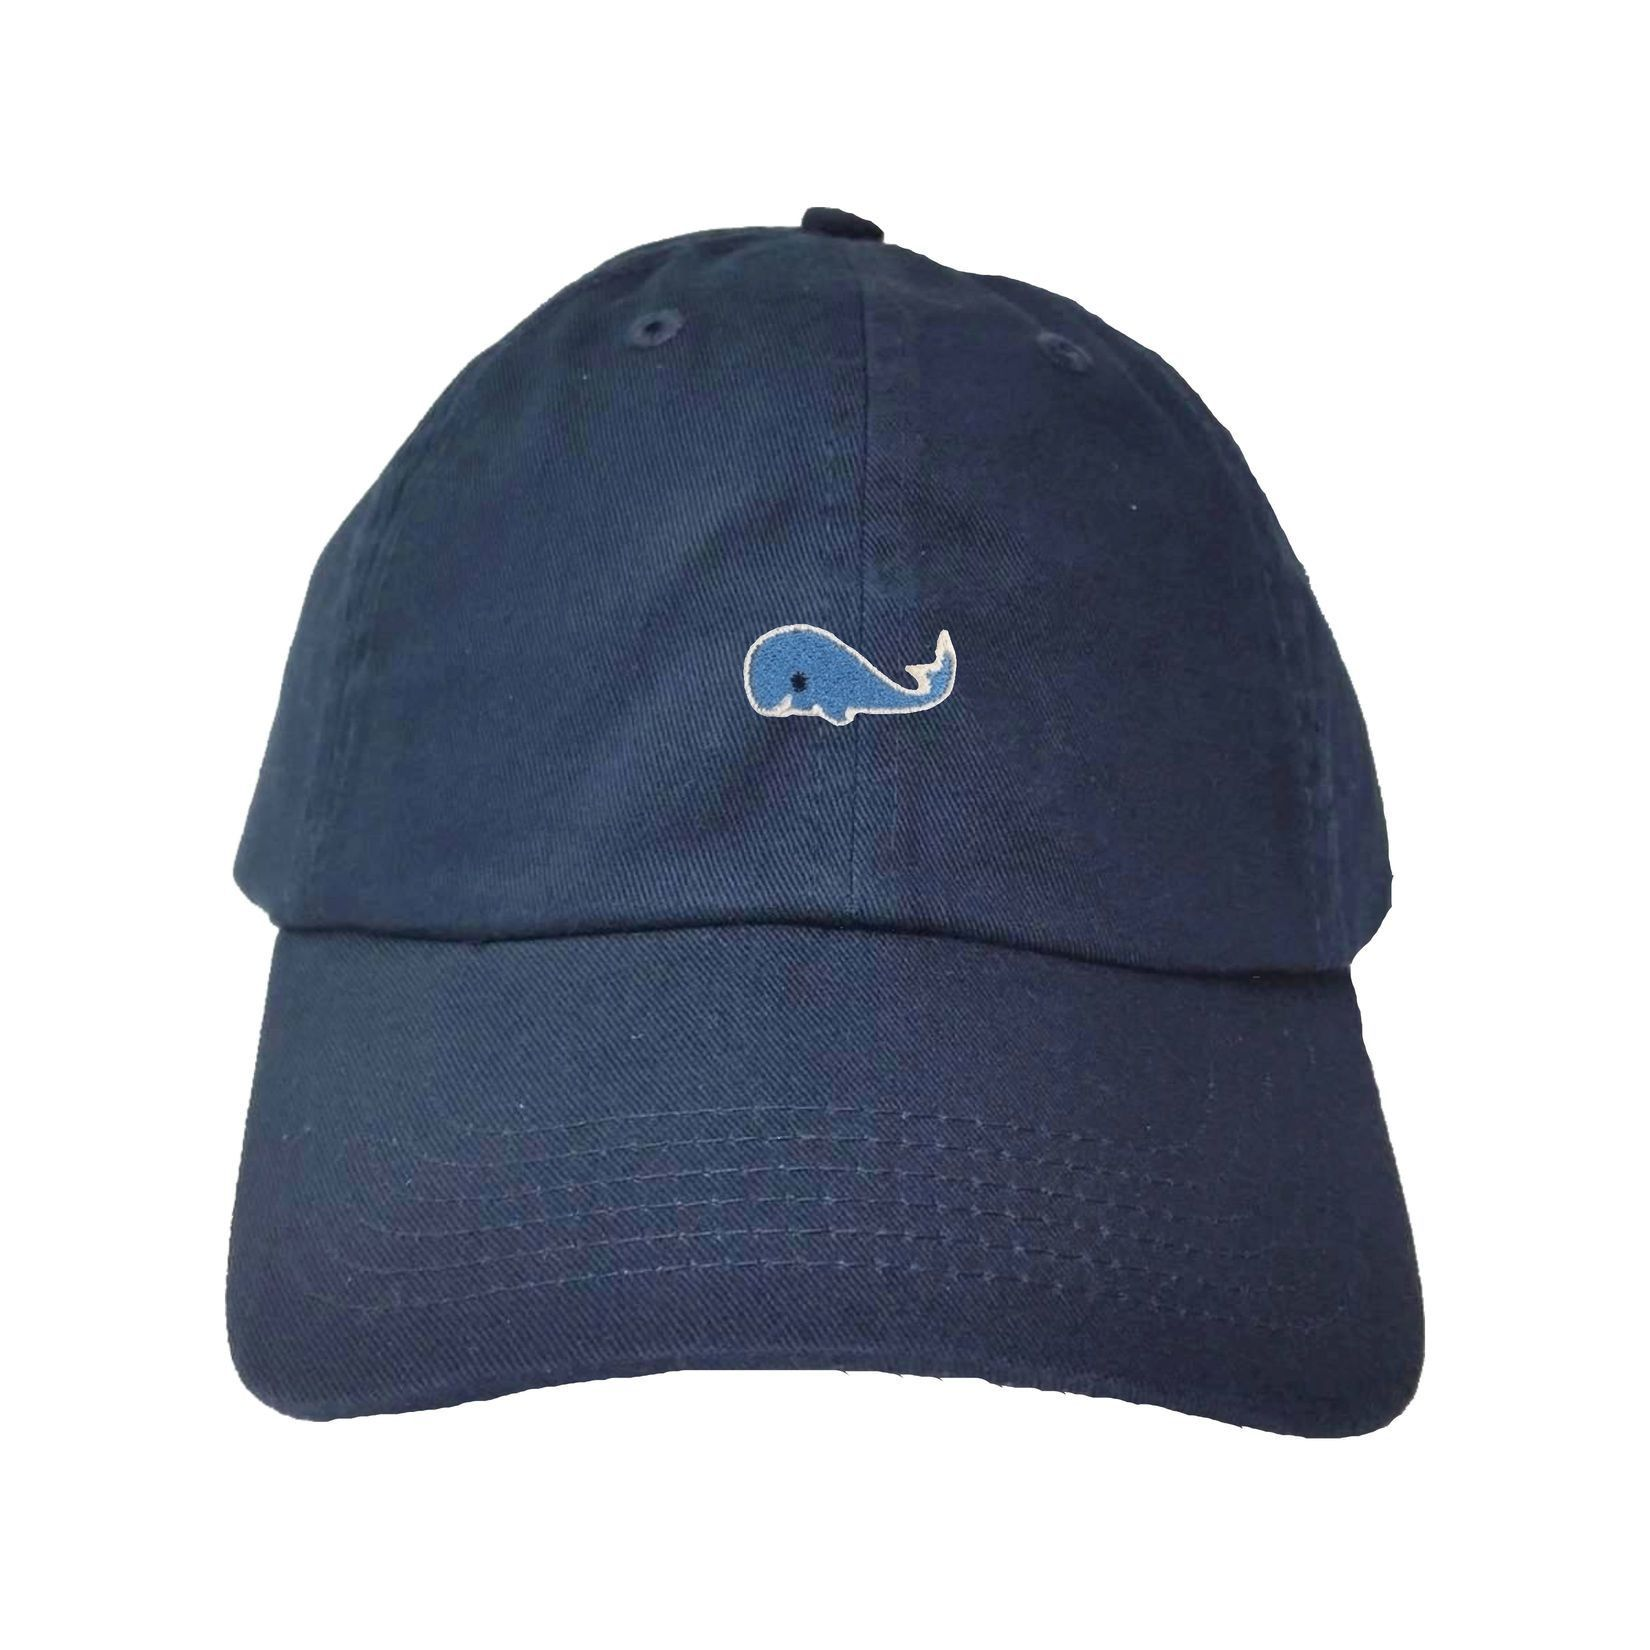 Adult Blue Whale Embroidered Dad Hat Cap Dad Hats Hats Embroidered